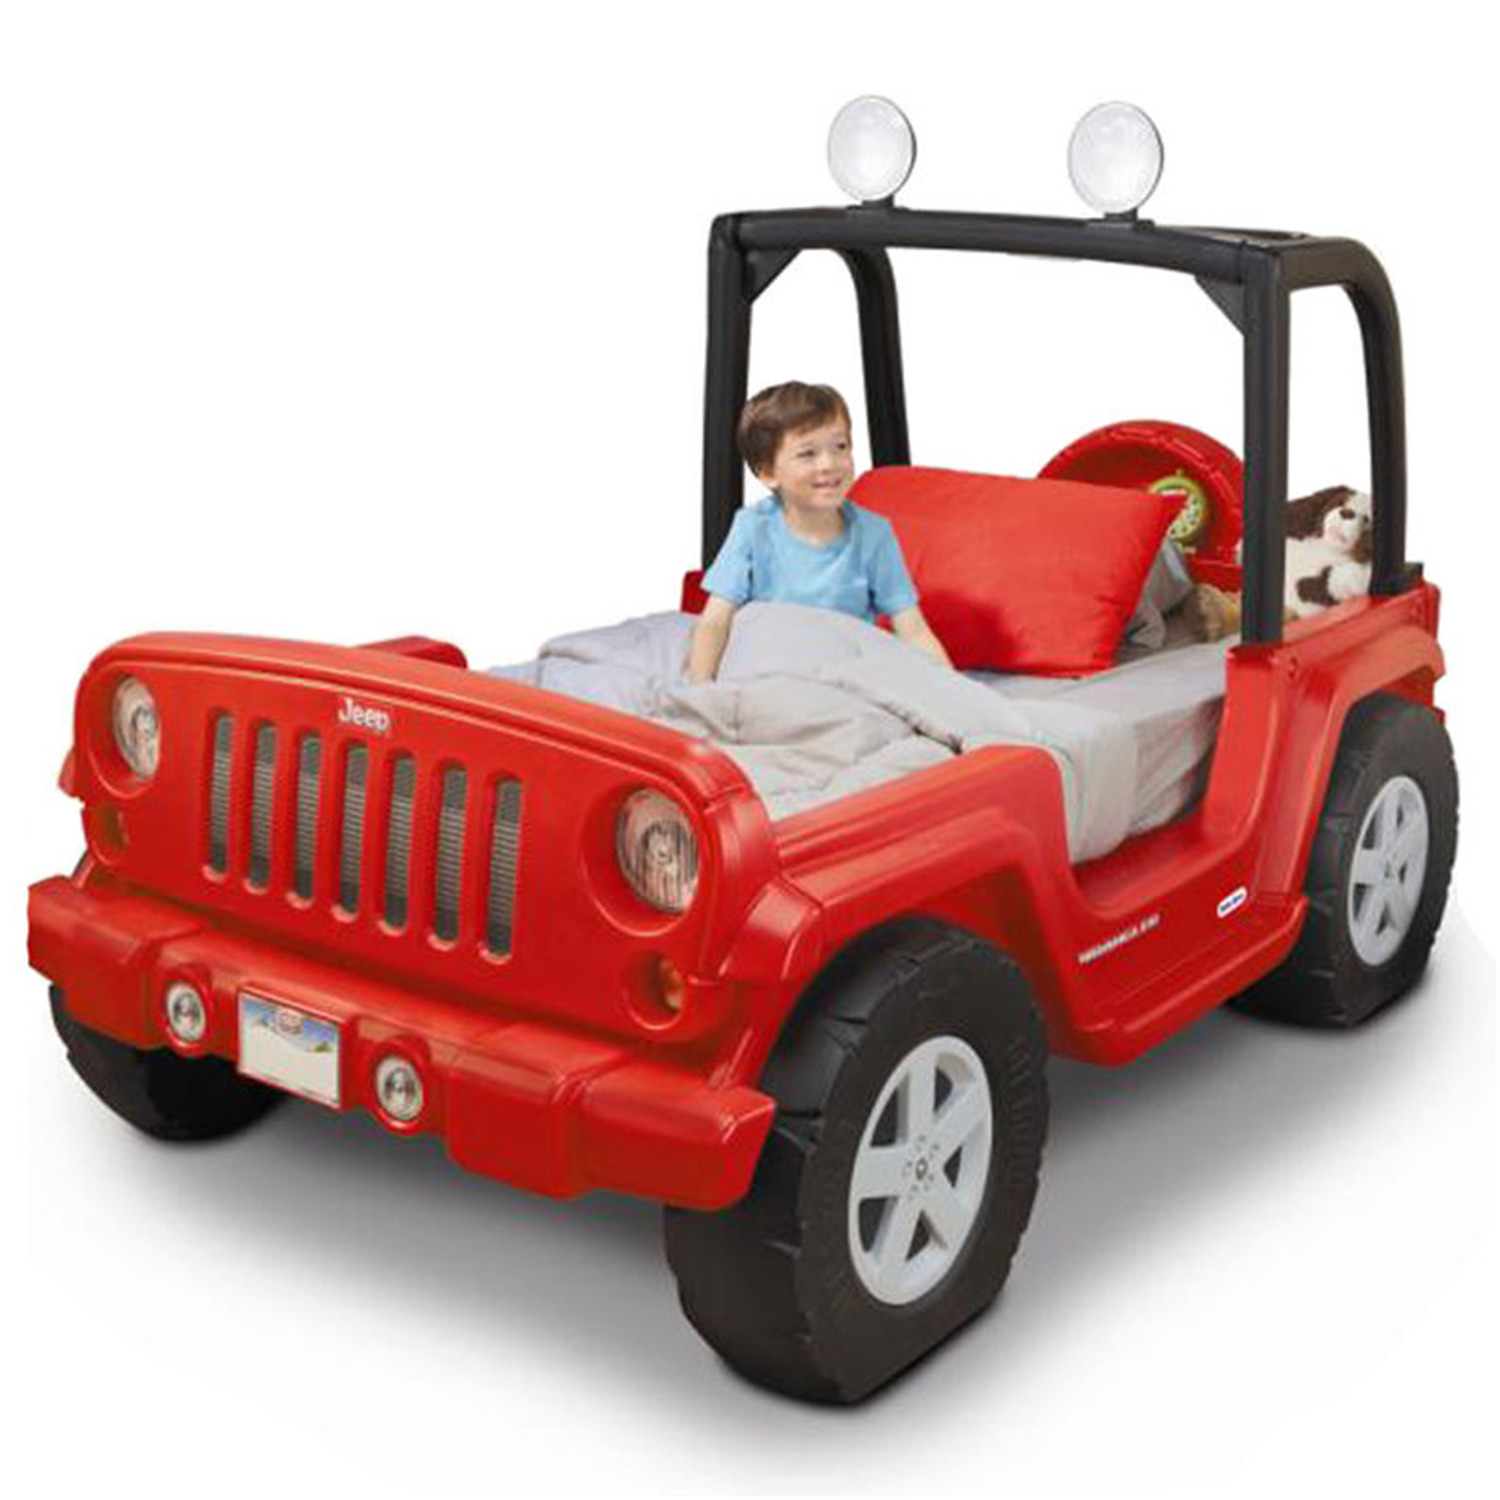 Toddler Jeep Bed 28 Images Safari Themed Toddler Bed Jeep Bed Safari Girl Or Boys Pink Jeep